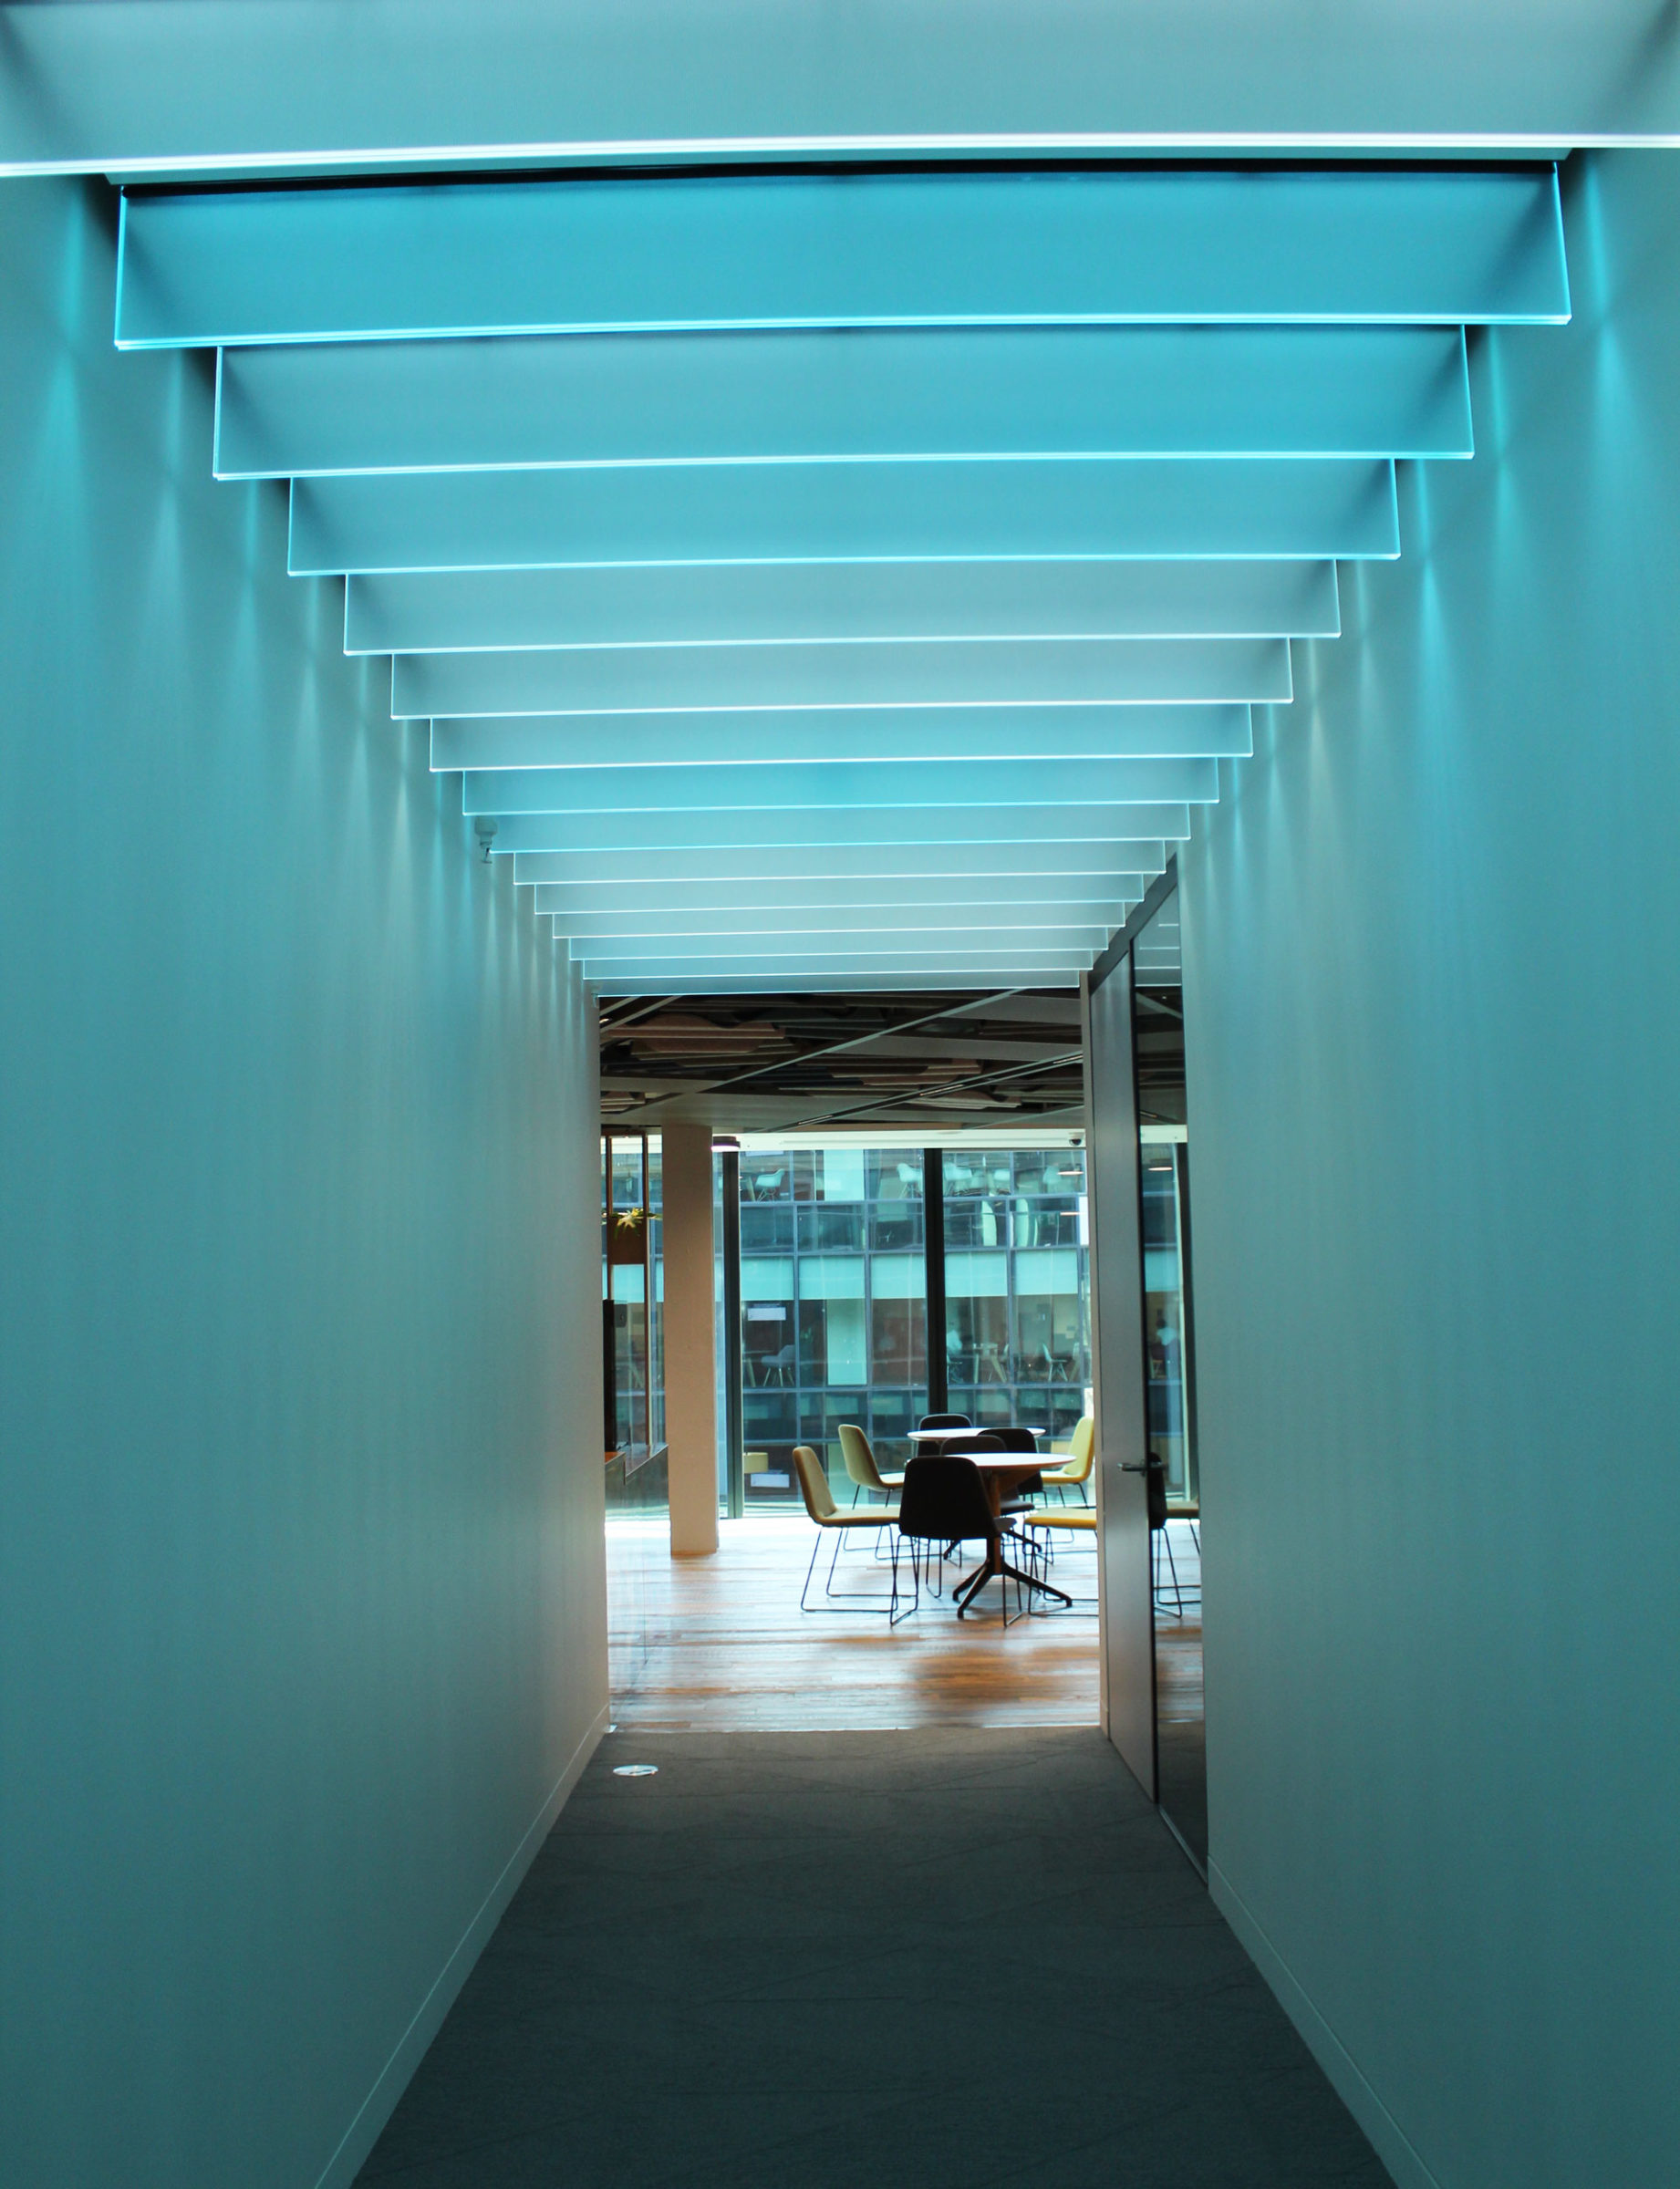 Bespoke glass fin SPI controlled ceiling light feature | Bespoke lighting design | The Light Lab